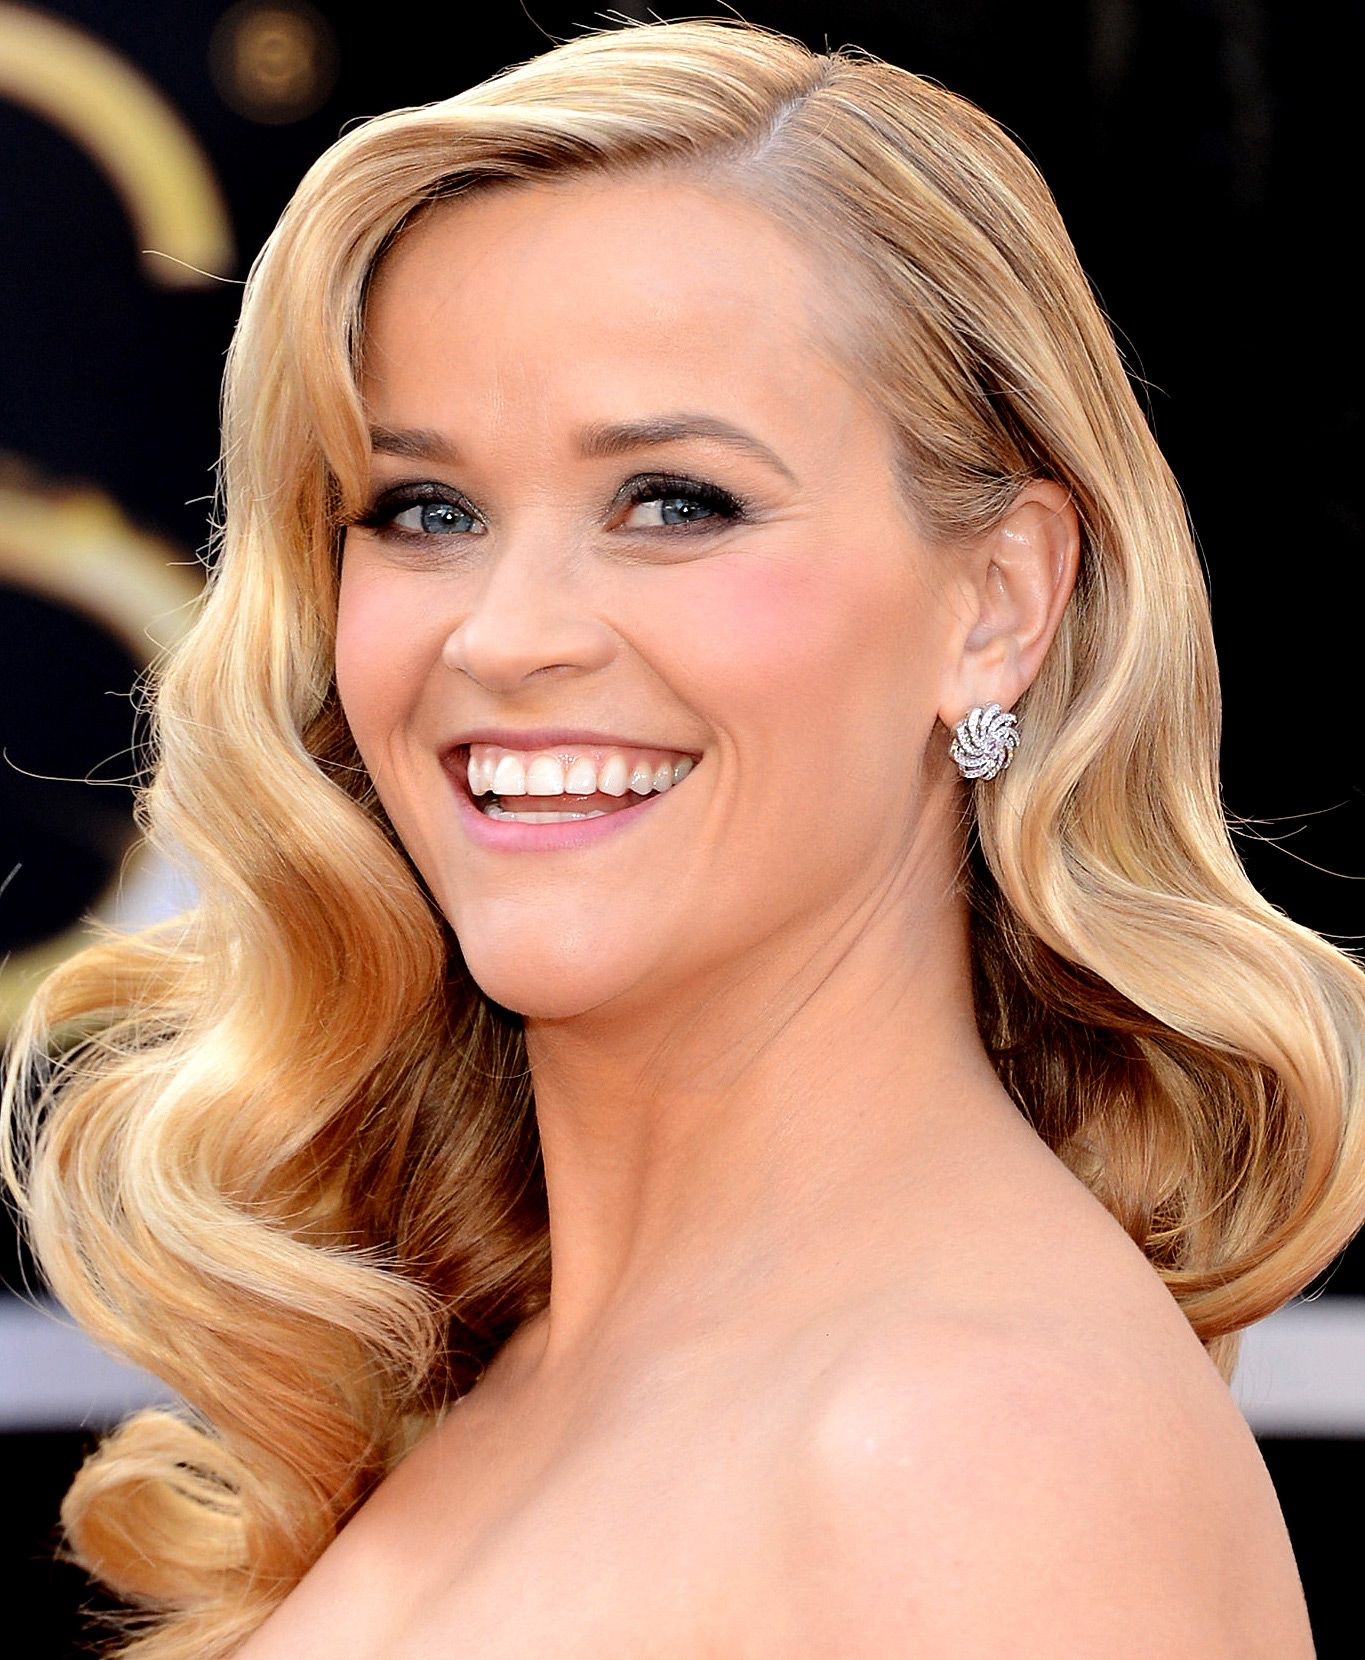 Image Result For Old Hollywood Hair Old Hollywood Hair Hollywood Glam Hair Hollywood Hair